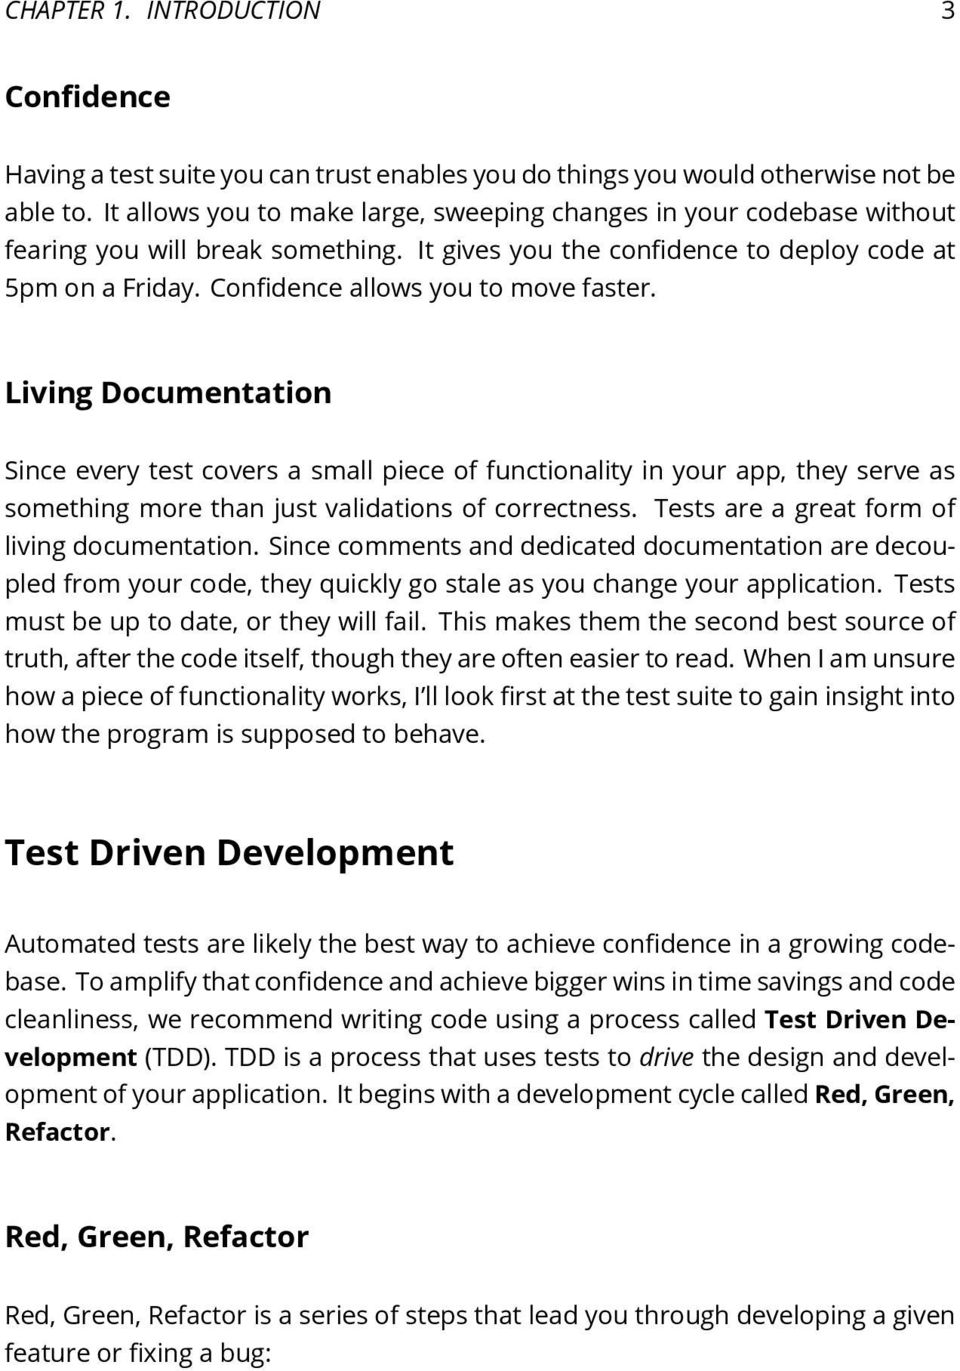 Confidence allows you to move faster. Living Documentation Since every test covers a small piece of functionality in your app, they serve as something more than just validations of correctness.